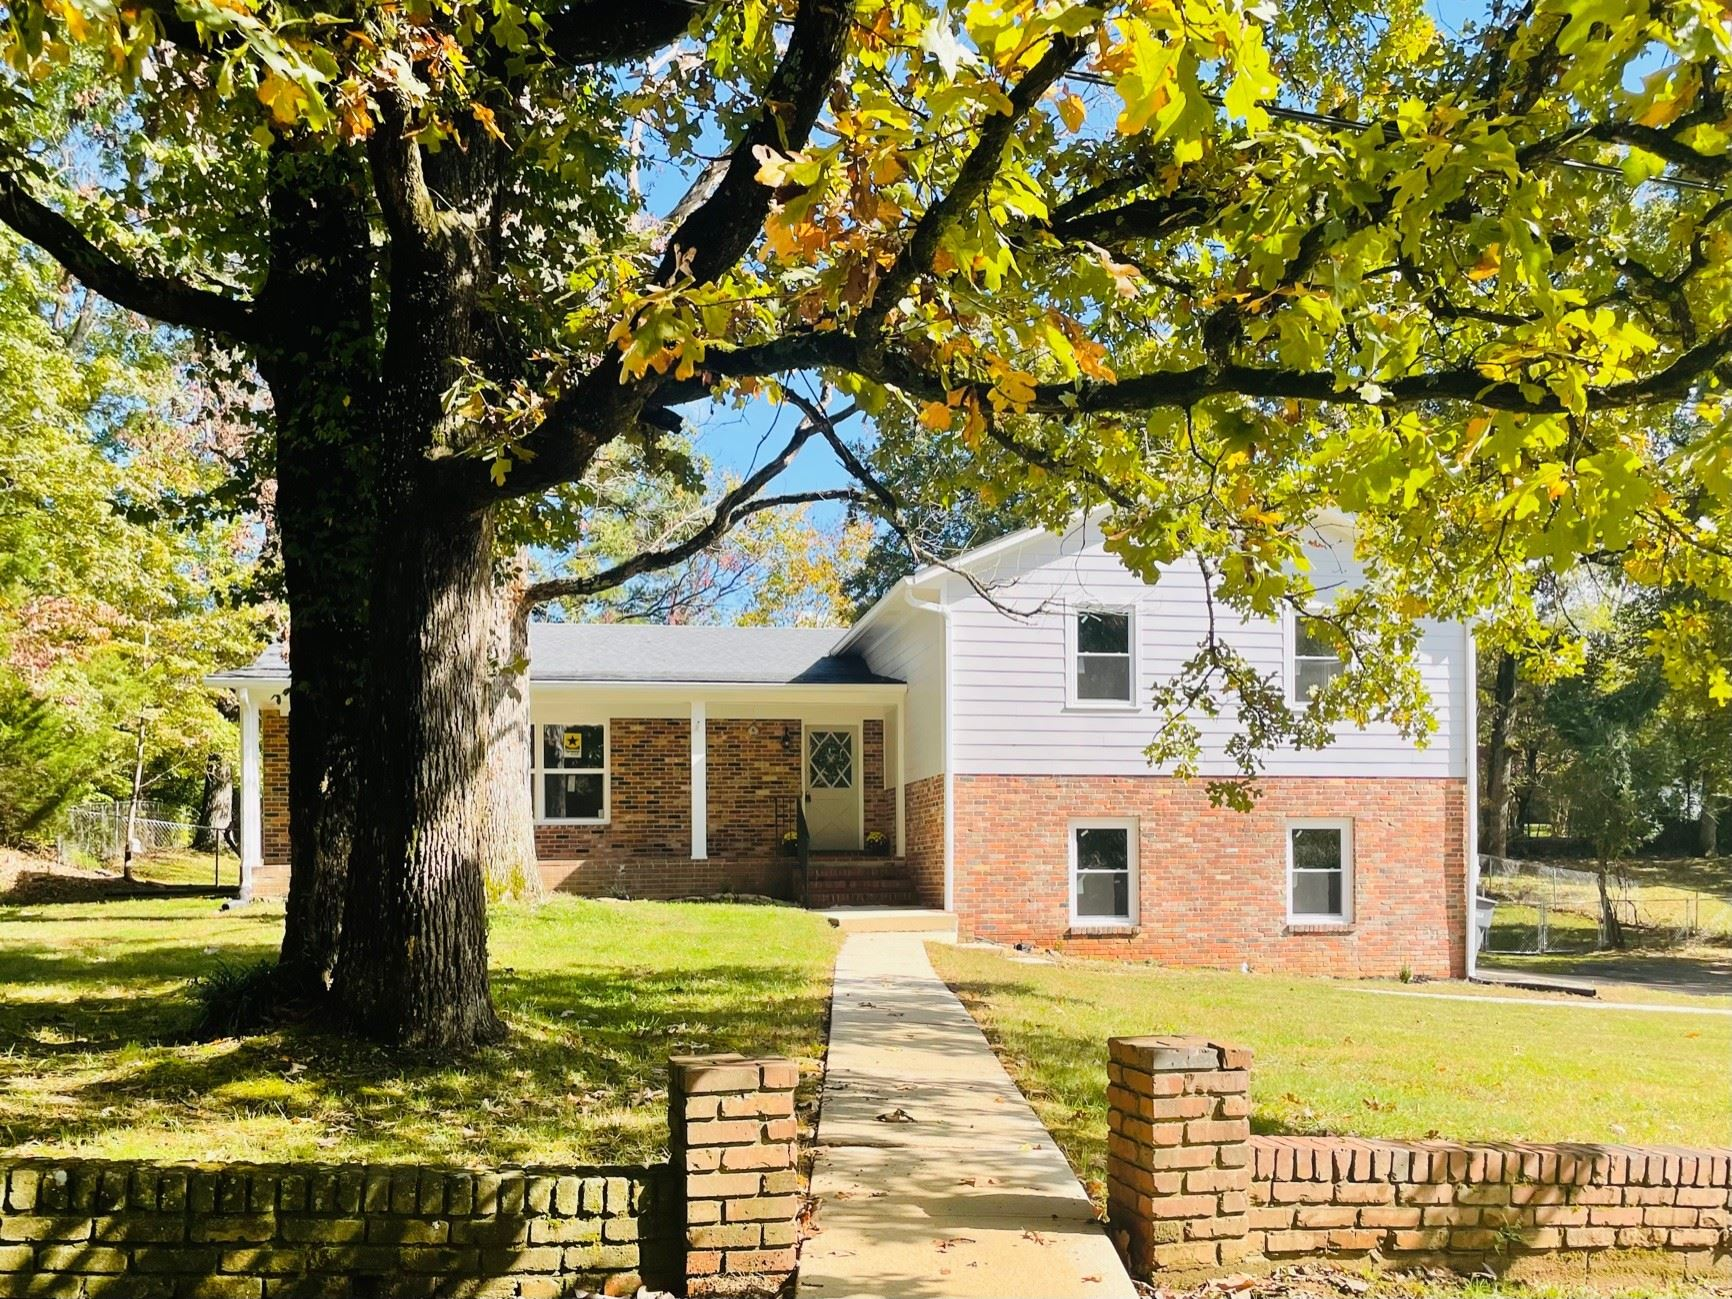 1025 Mount Vernon Rd, Cookeville, TN 38501 - MLS#: 2302850